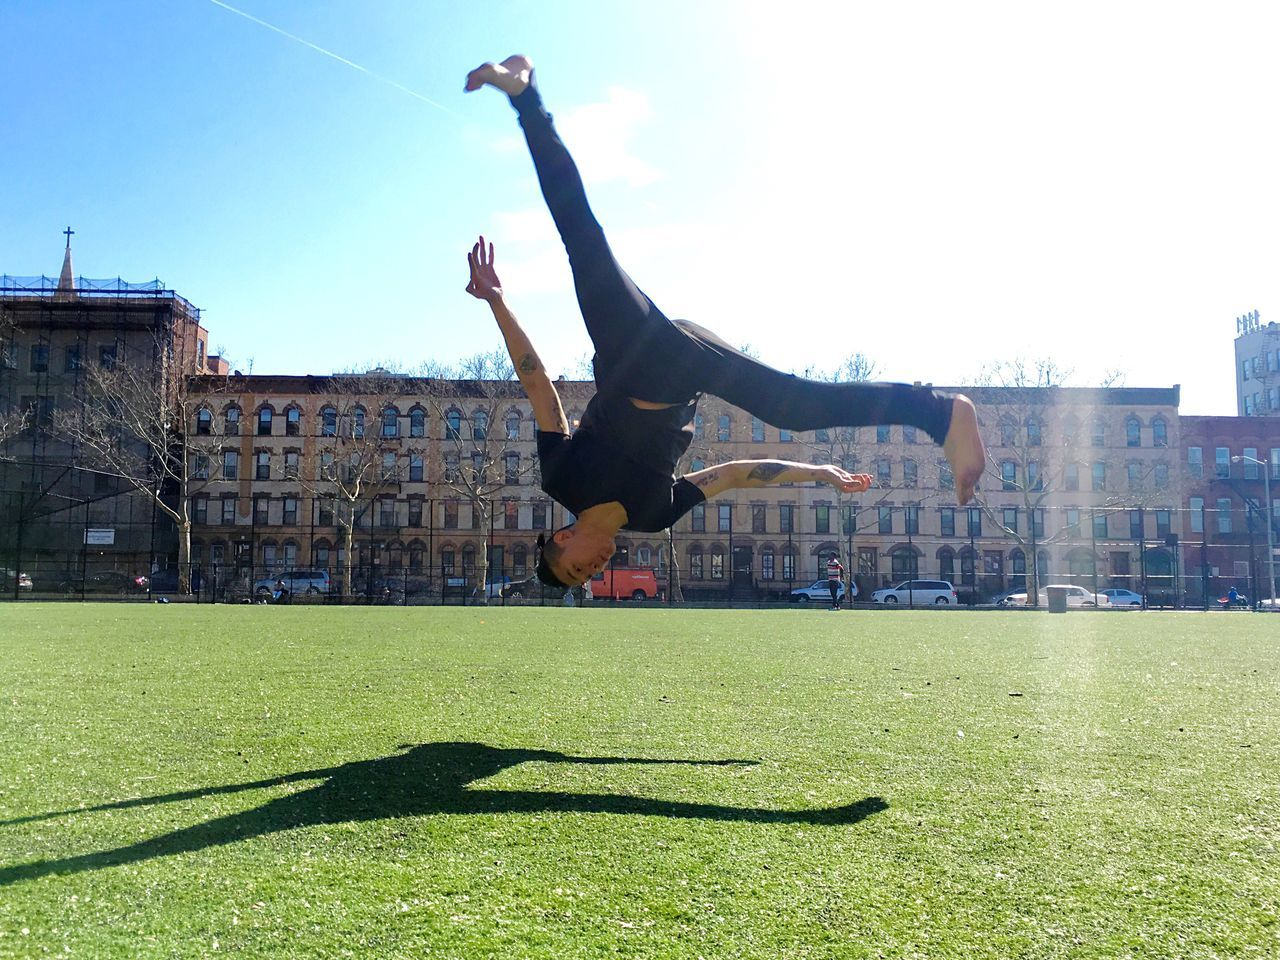 Man jumping in front of buildings against sky